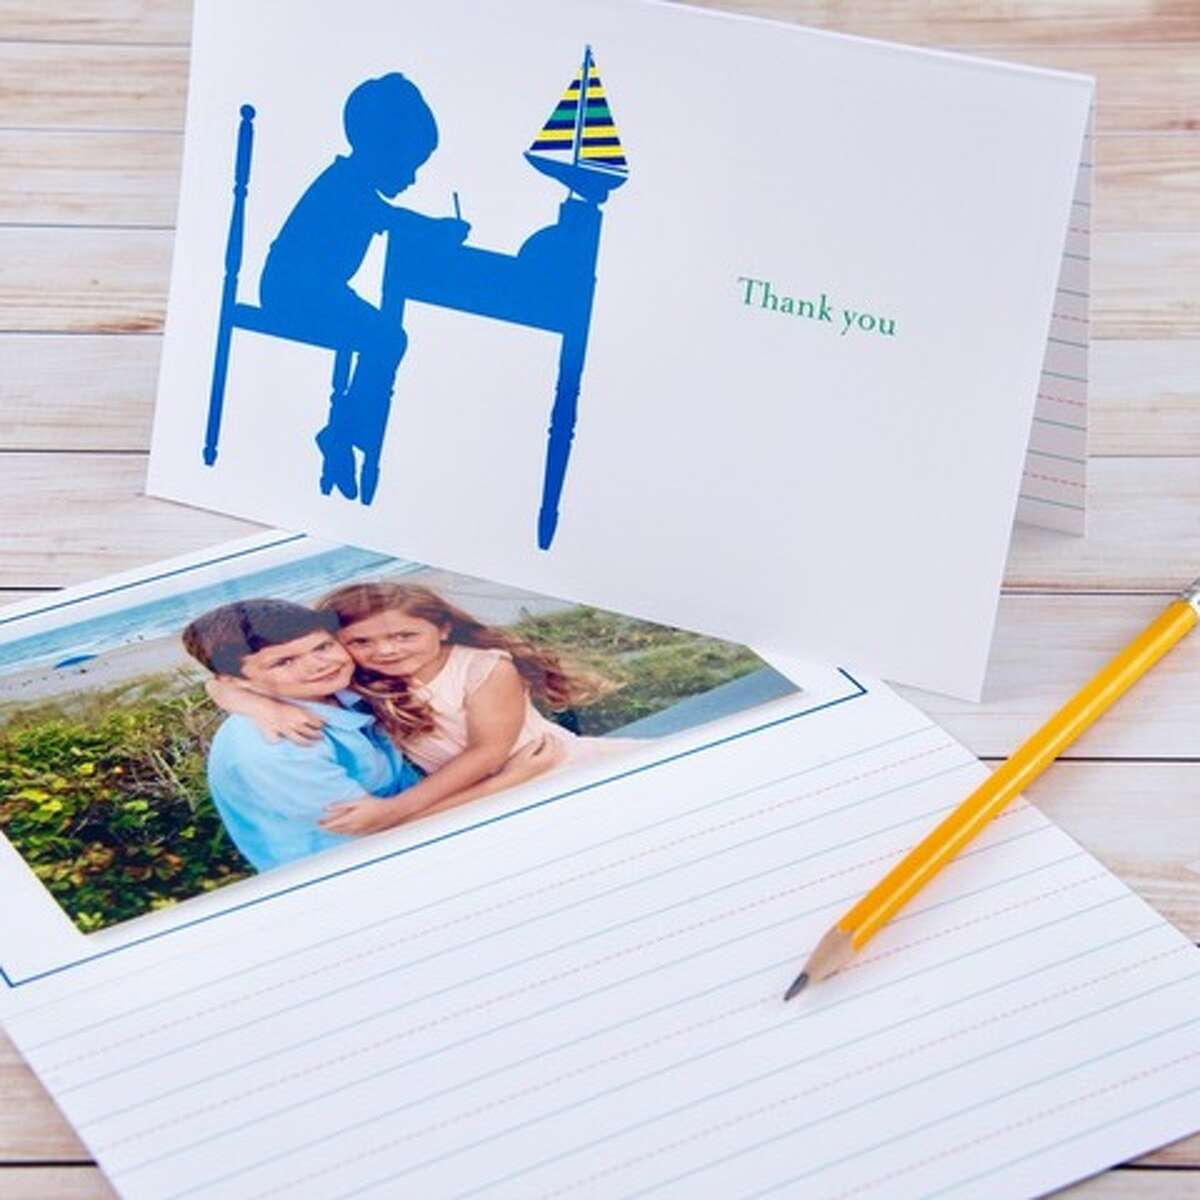 Coral & Blue cards have room for children to write, draw or add a photo.